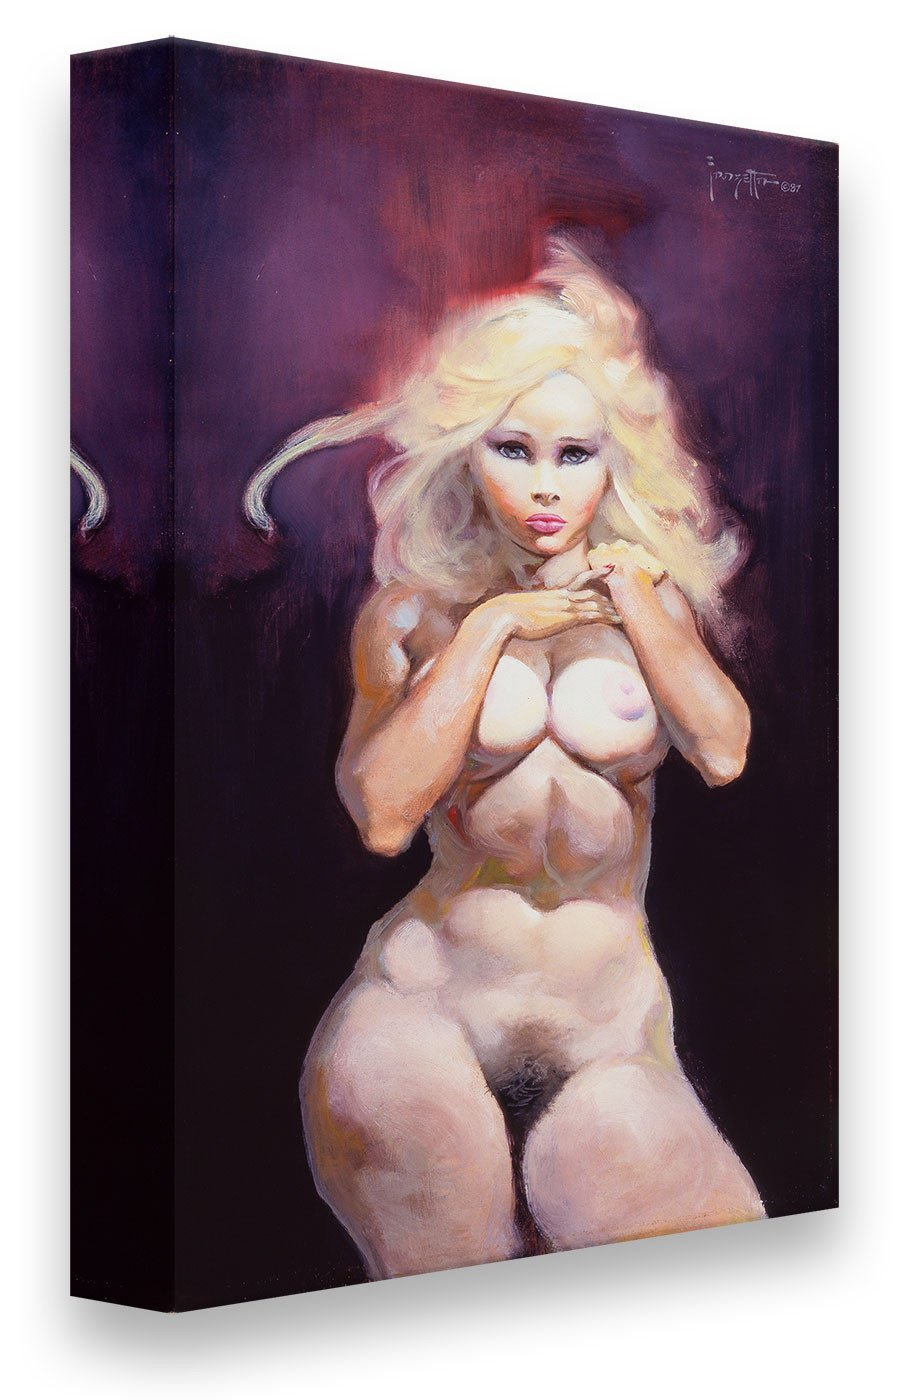 FrazettaGirls Art Print Canvas / Stretched on wooden bar / 18x24 Nude Print